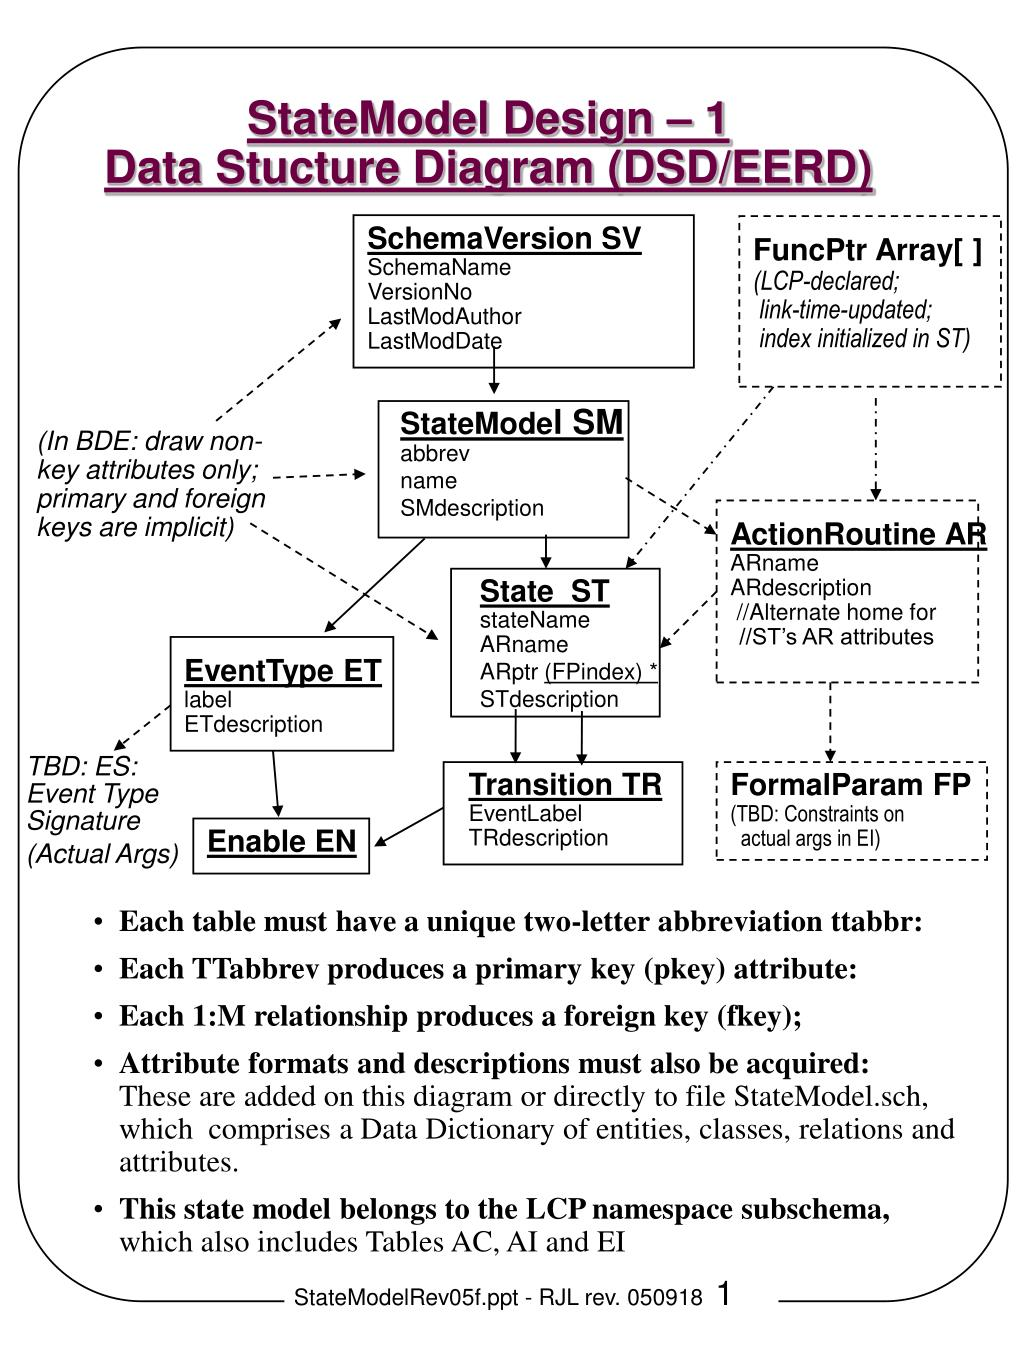 PPT - StateModel Design – 1 Data Stucture Diagram (DSD/EERD ... Pkey Wiring Diagram on